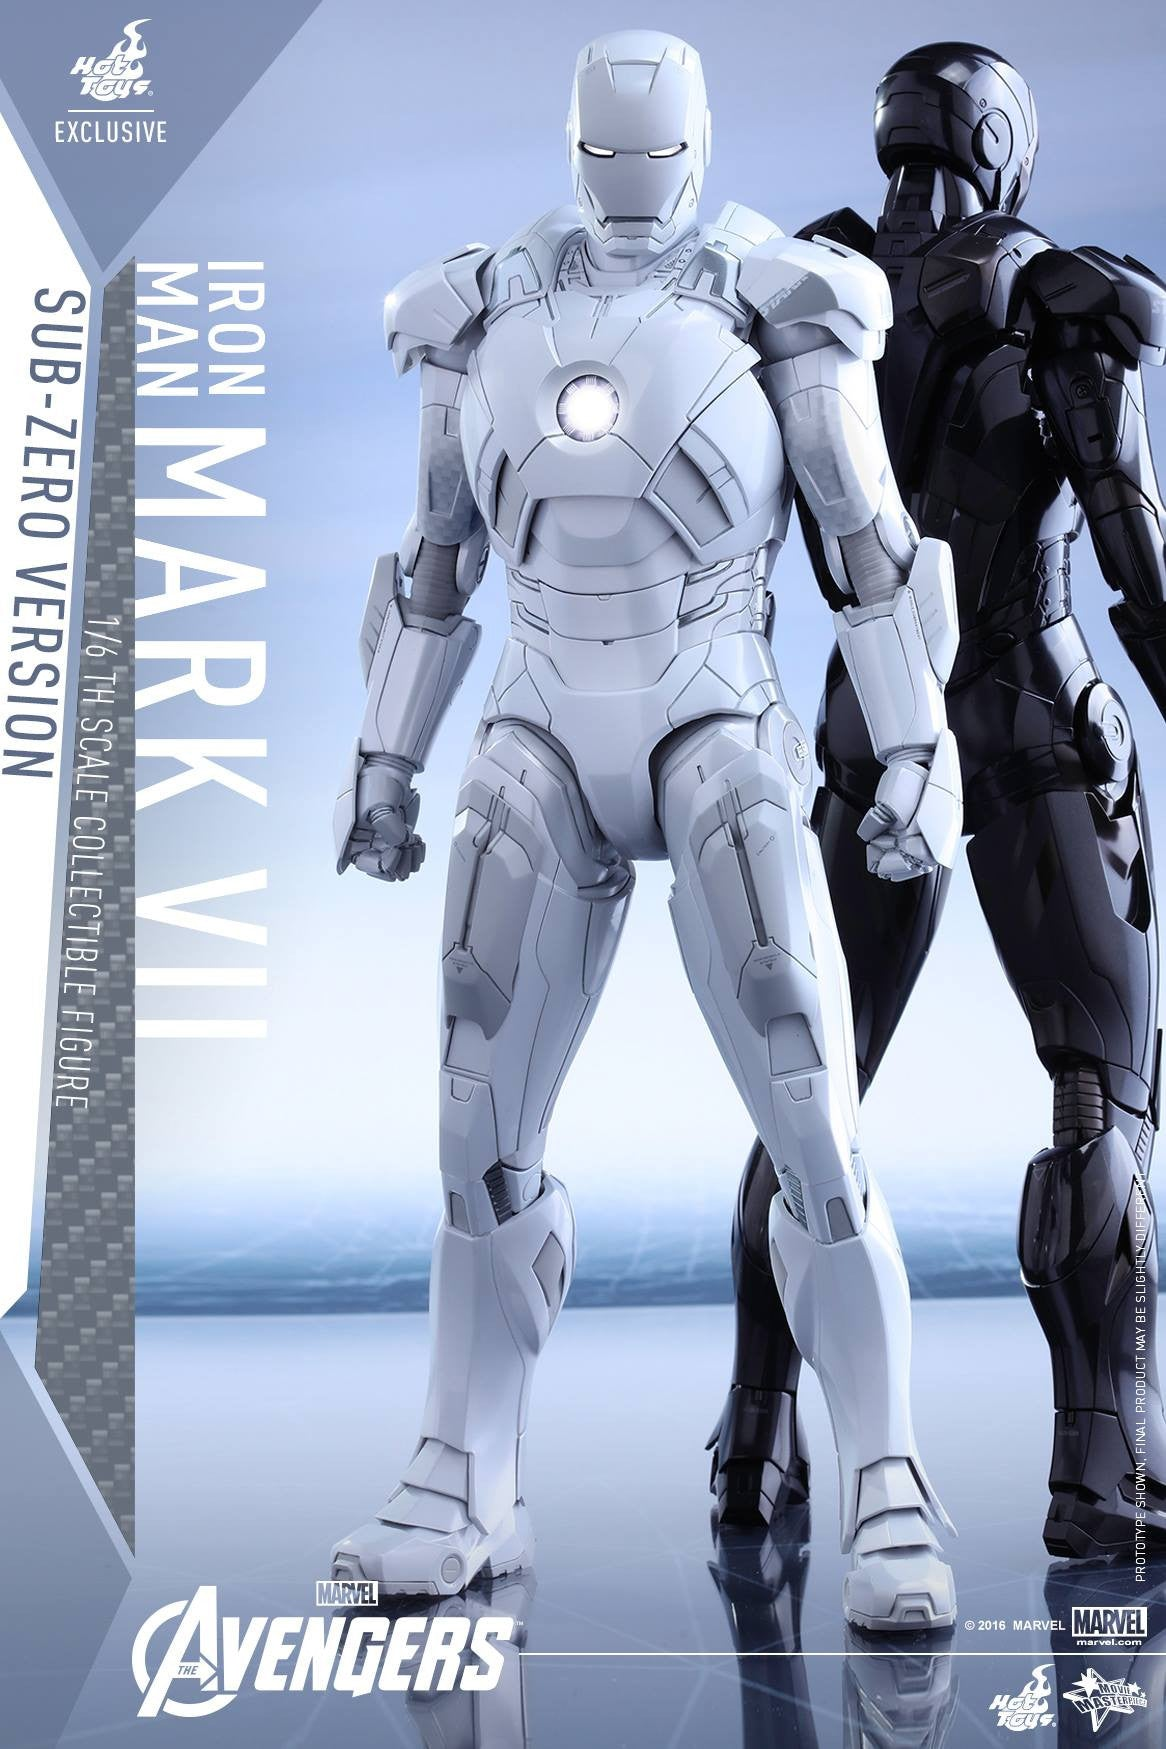 (IN STOCK) Hot Toys - MMS329 - The Avengers - Iron Man Mark VII (Sub-Zero Version) - Marvelous Toys - 7